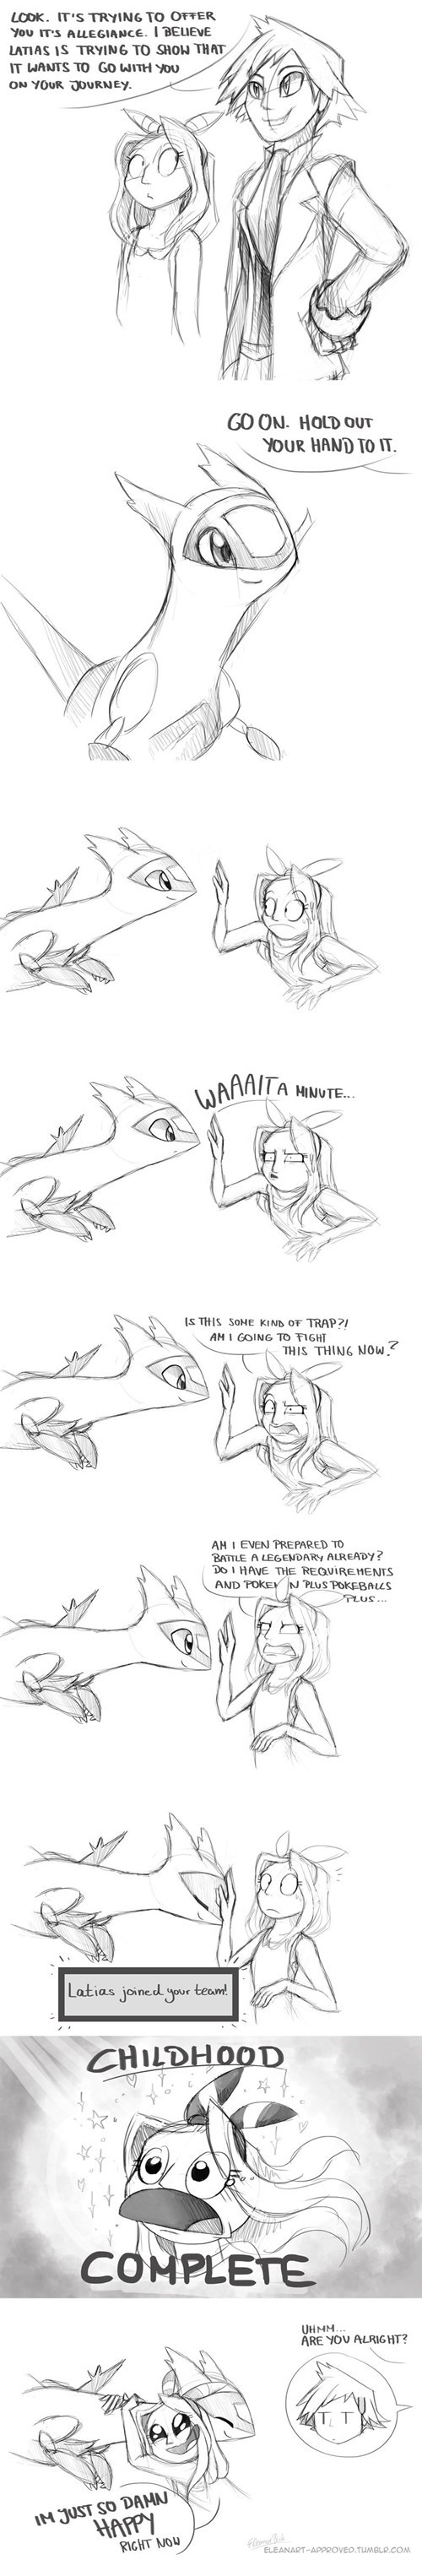 latias Fan Art gen 3 web comics - 8465686784